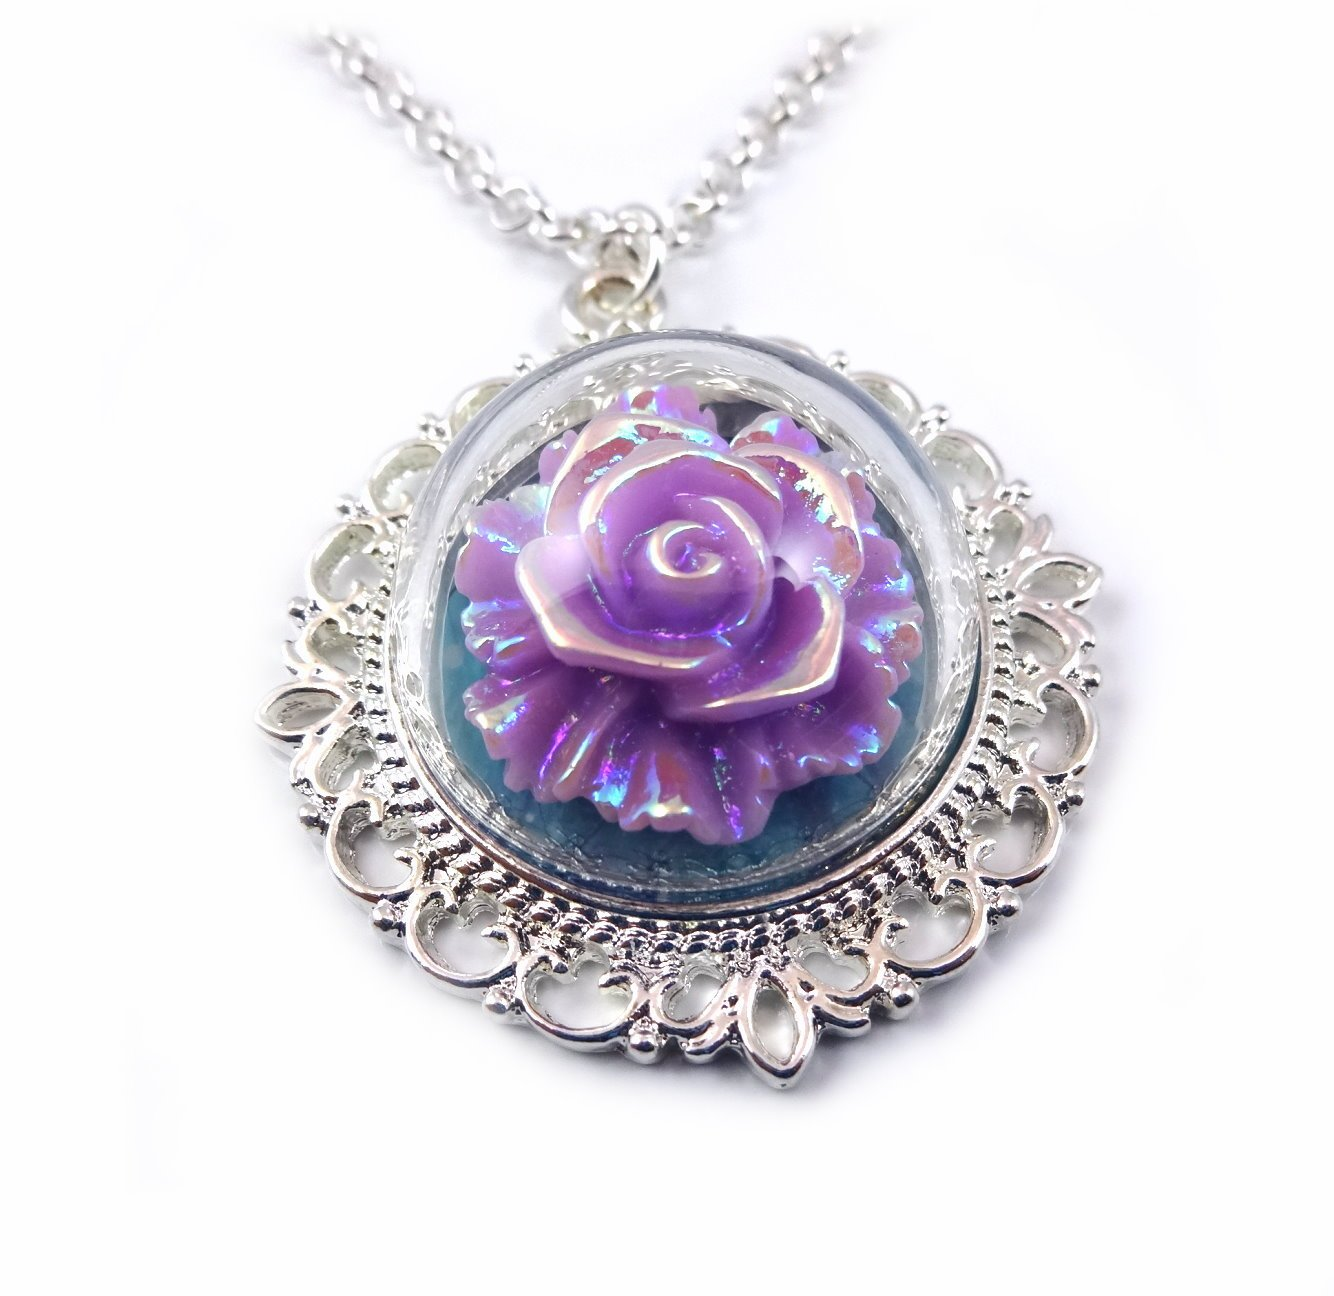 Beauty and the Beast Enchanted Purple Lavender Rose Necklace 20 in Fairy Tale Wedding by Little Gem Girl